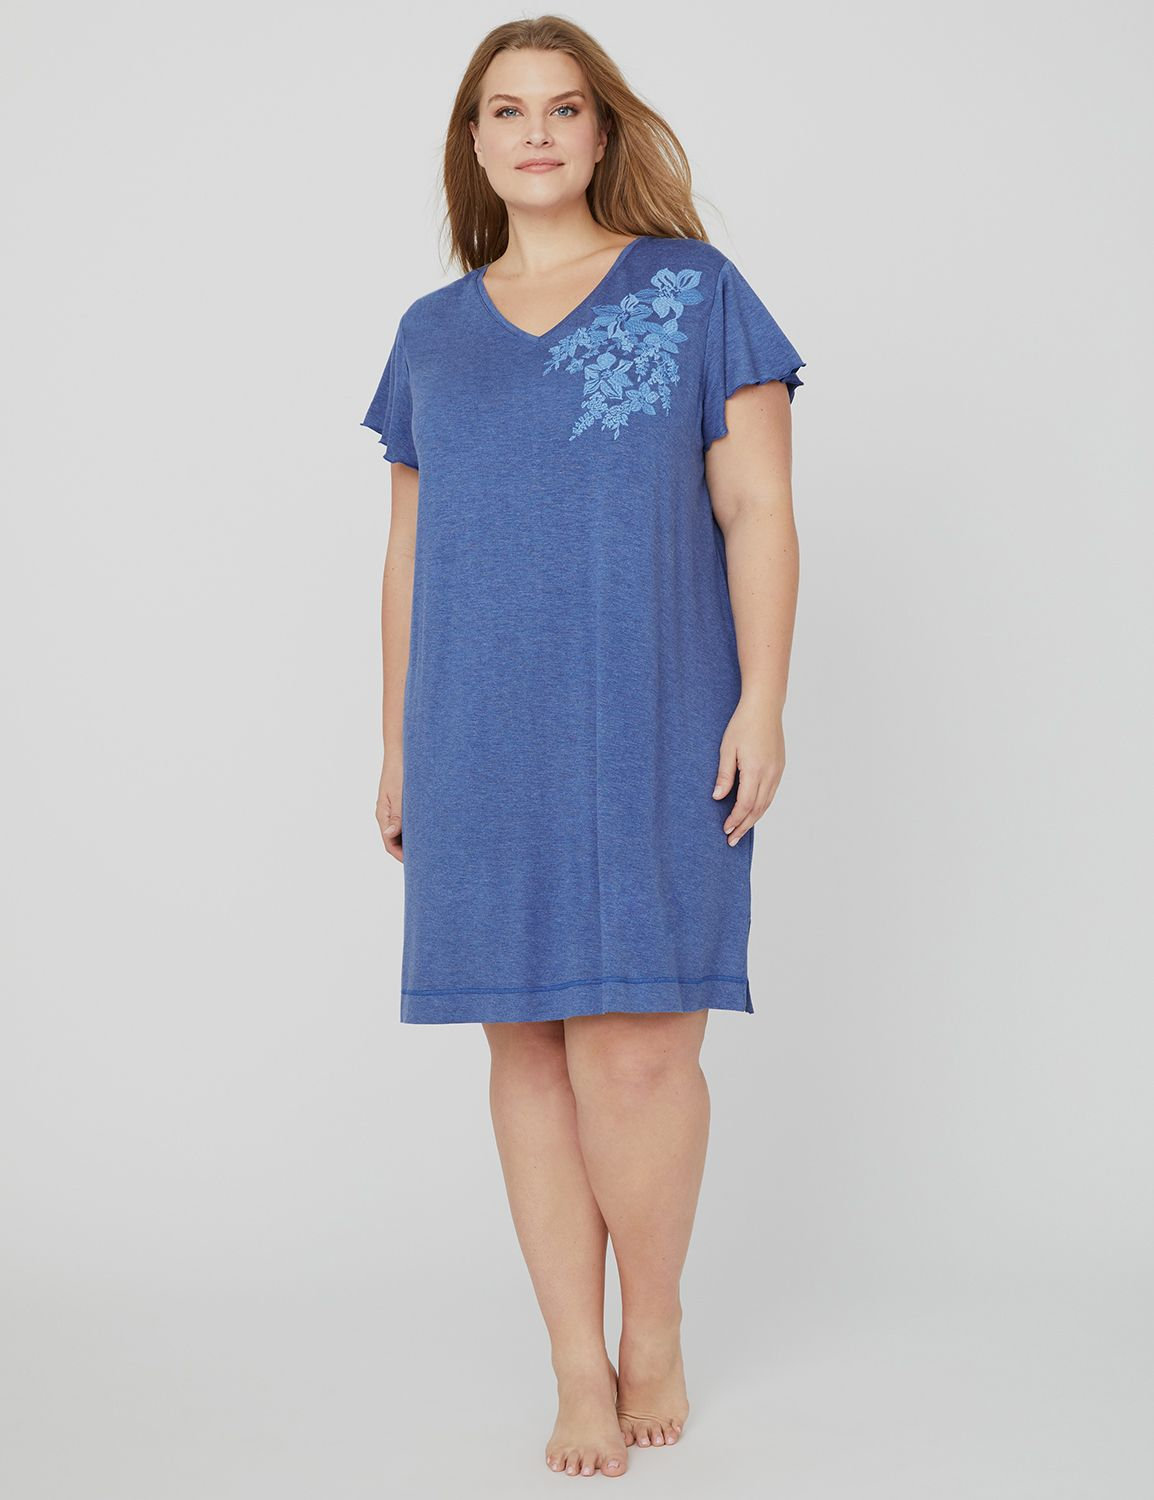 Embroidered Terry Sleep Tee 1088486- Embroidered SS f/t sleepsh MP-300096238